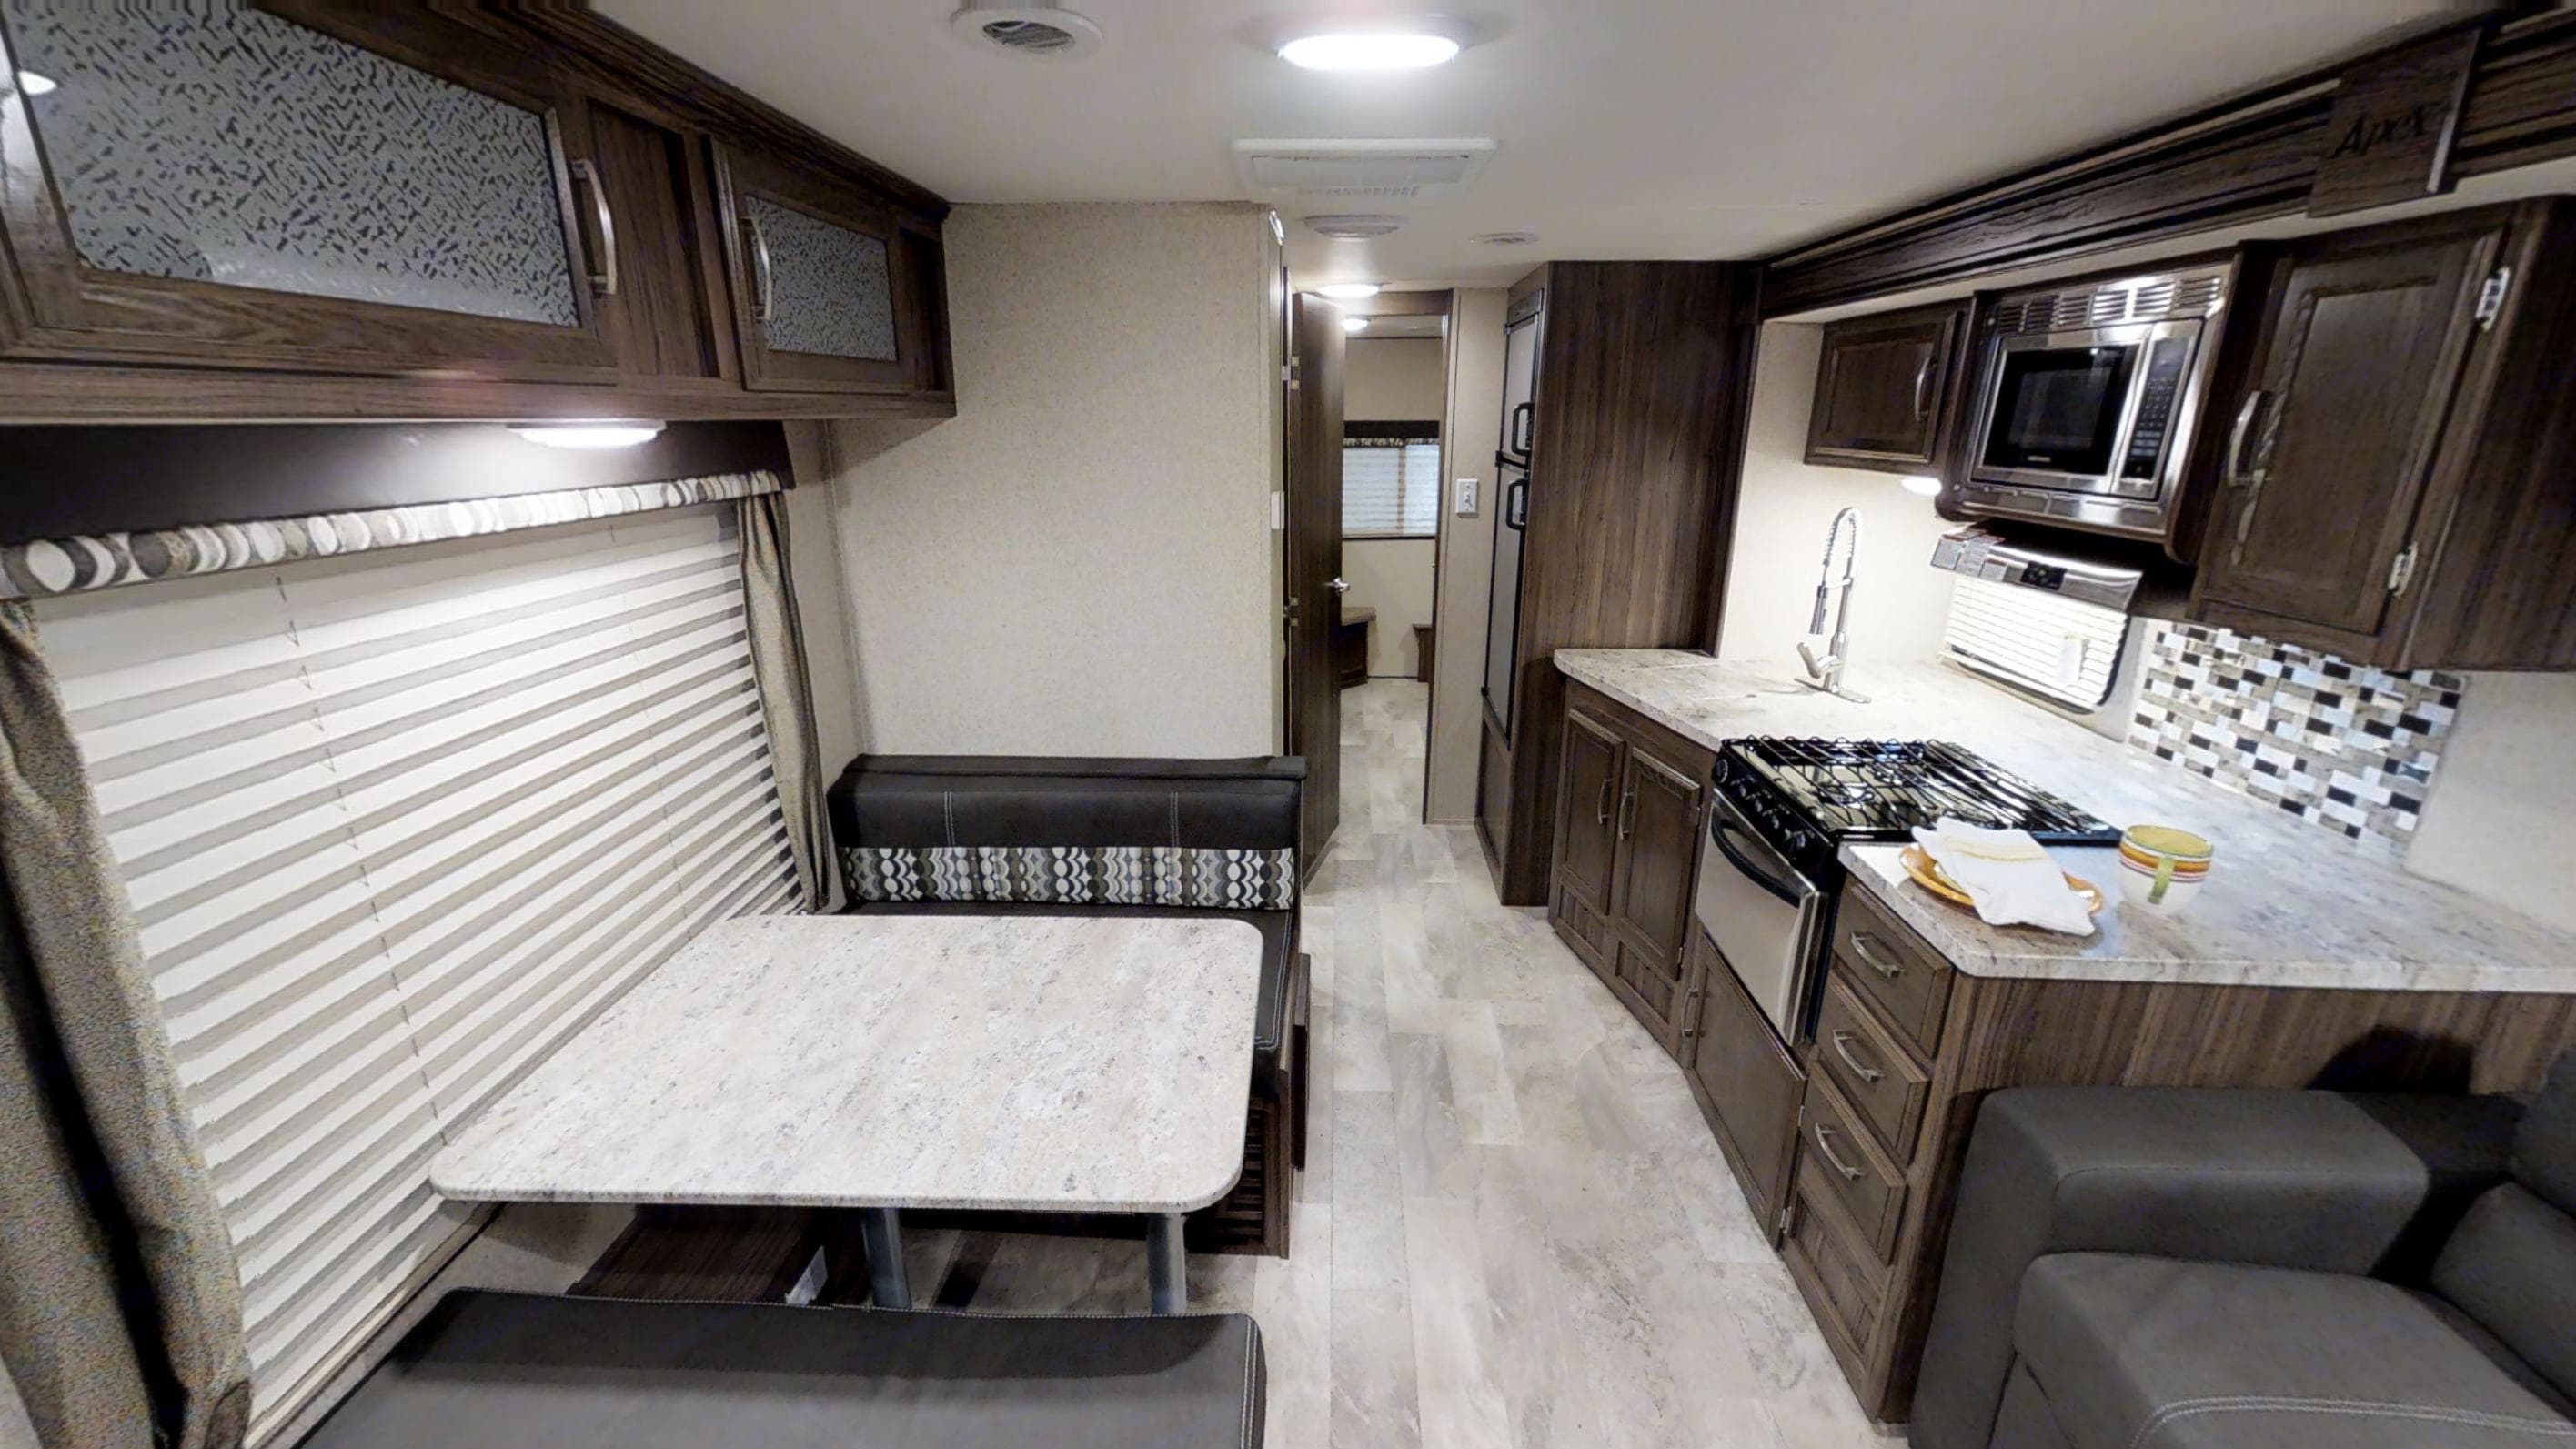 the view when you walk in. Coachmen Apex 2019